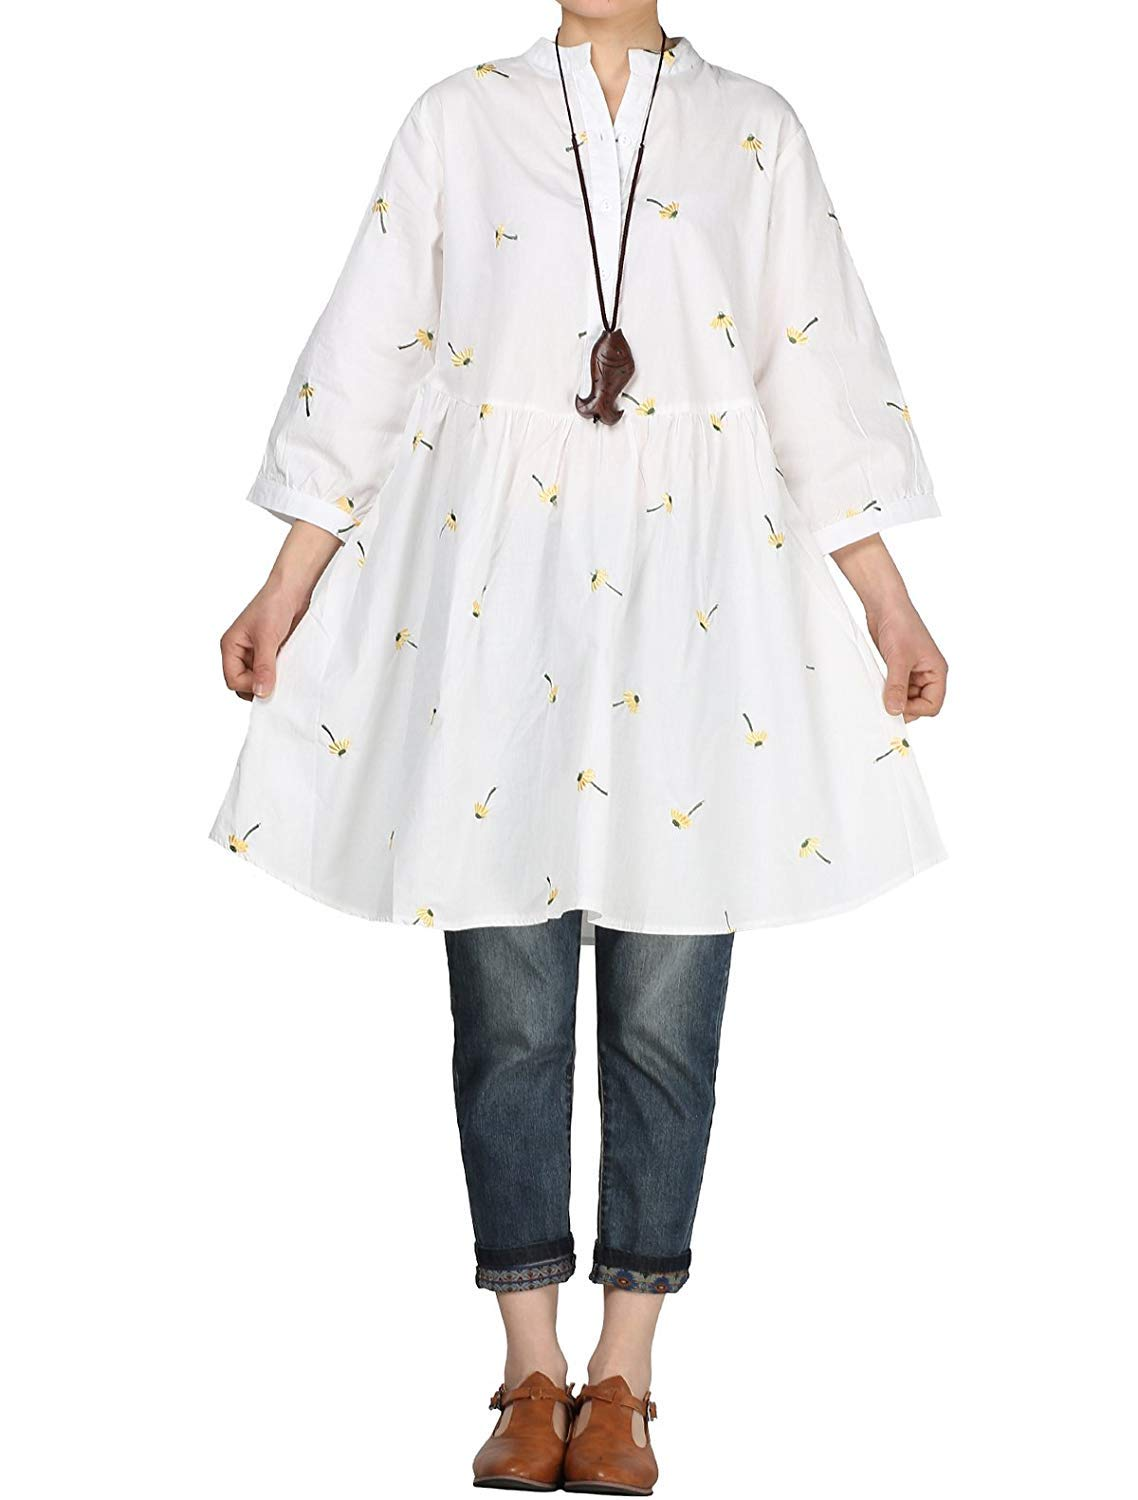 Eletina Staring Women's Notched Embroidery Half Dress Button Down Flared Blouse Tunic White by Eletina Staring